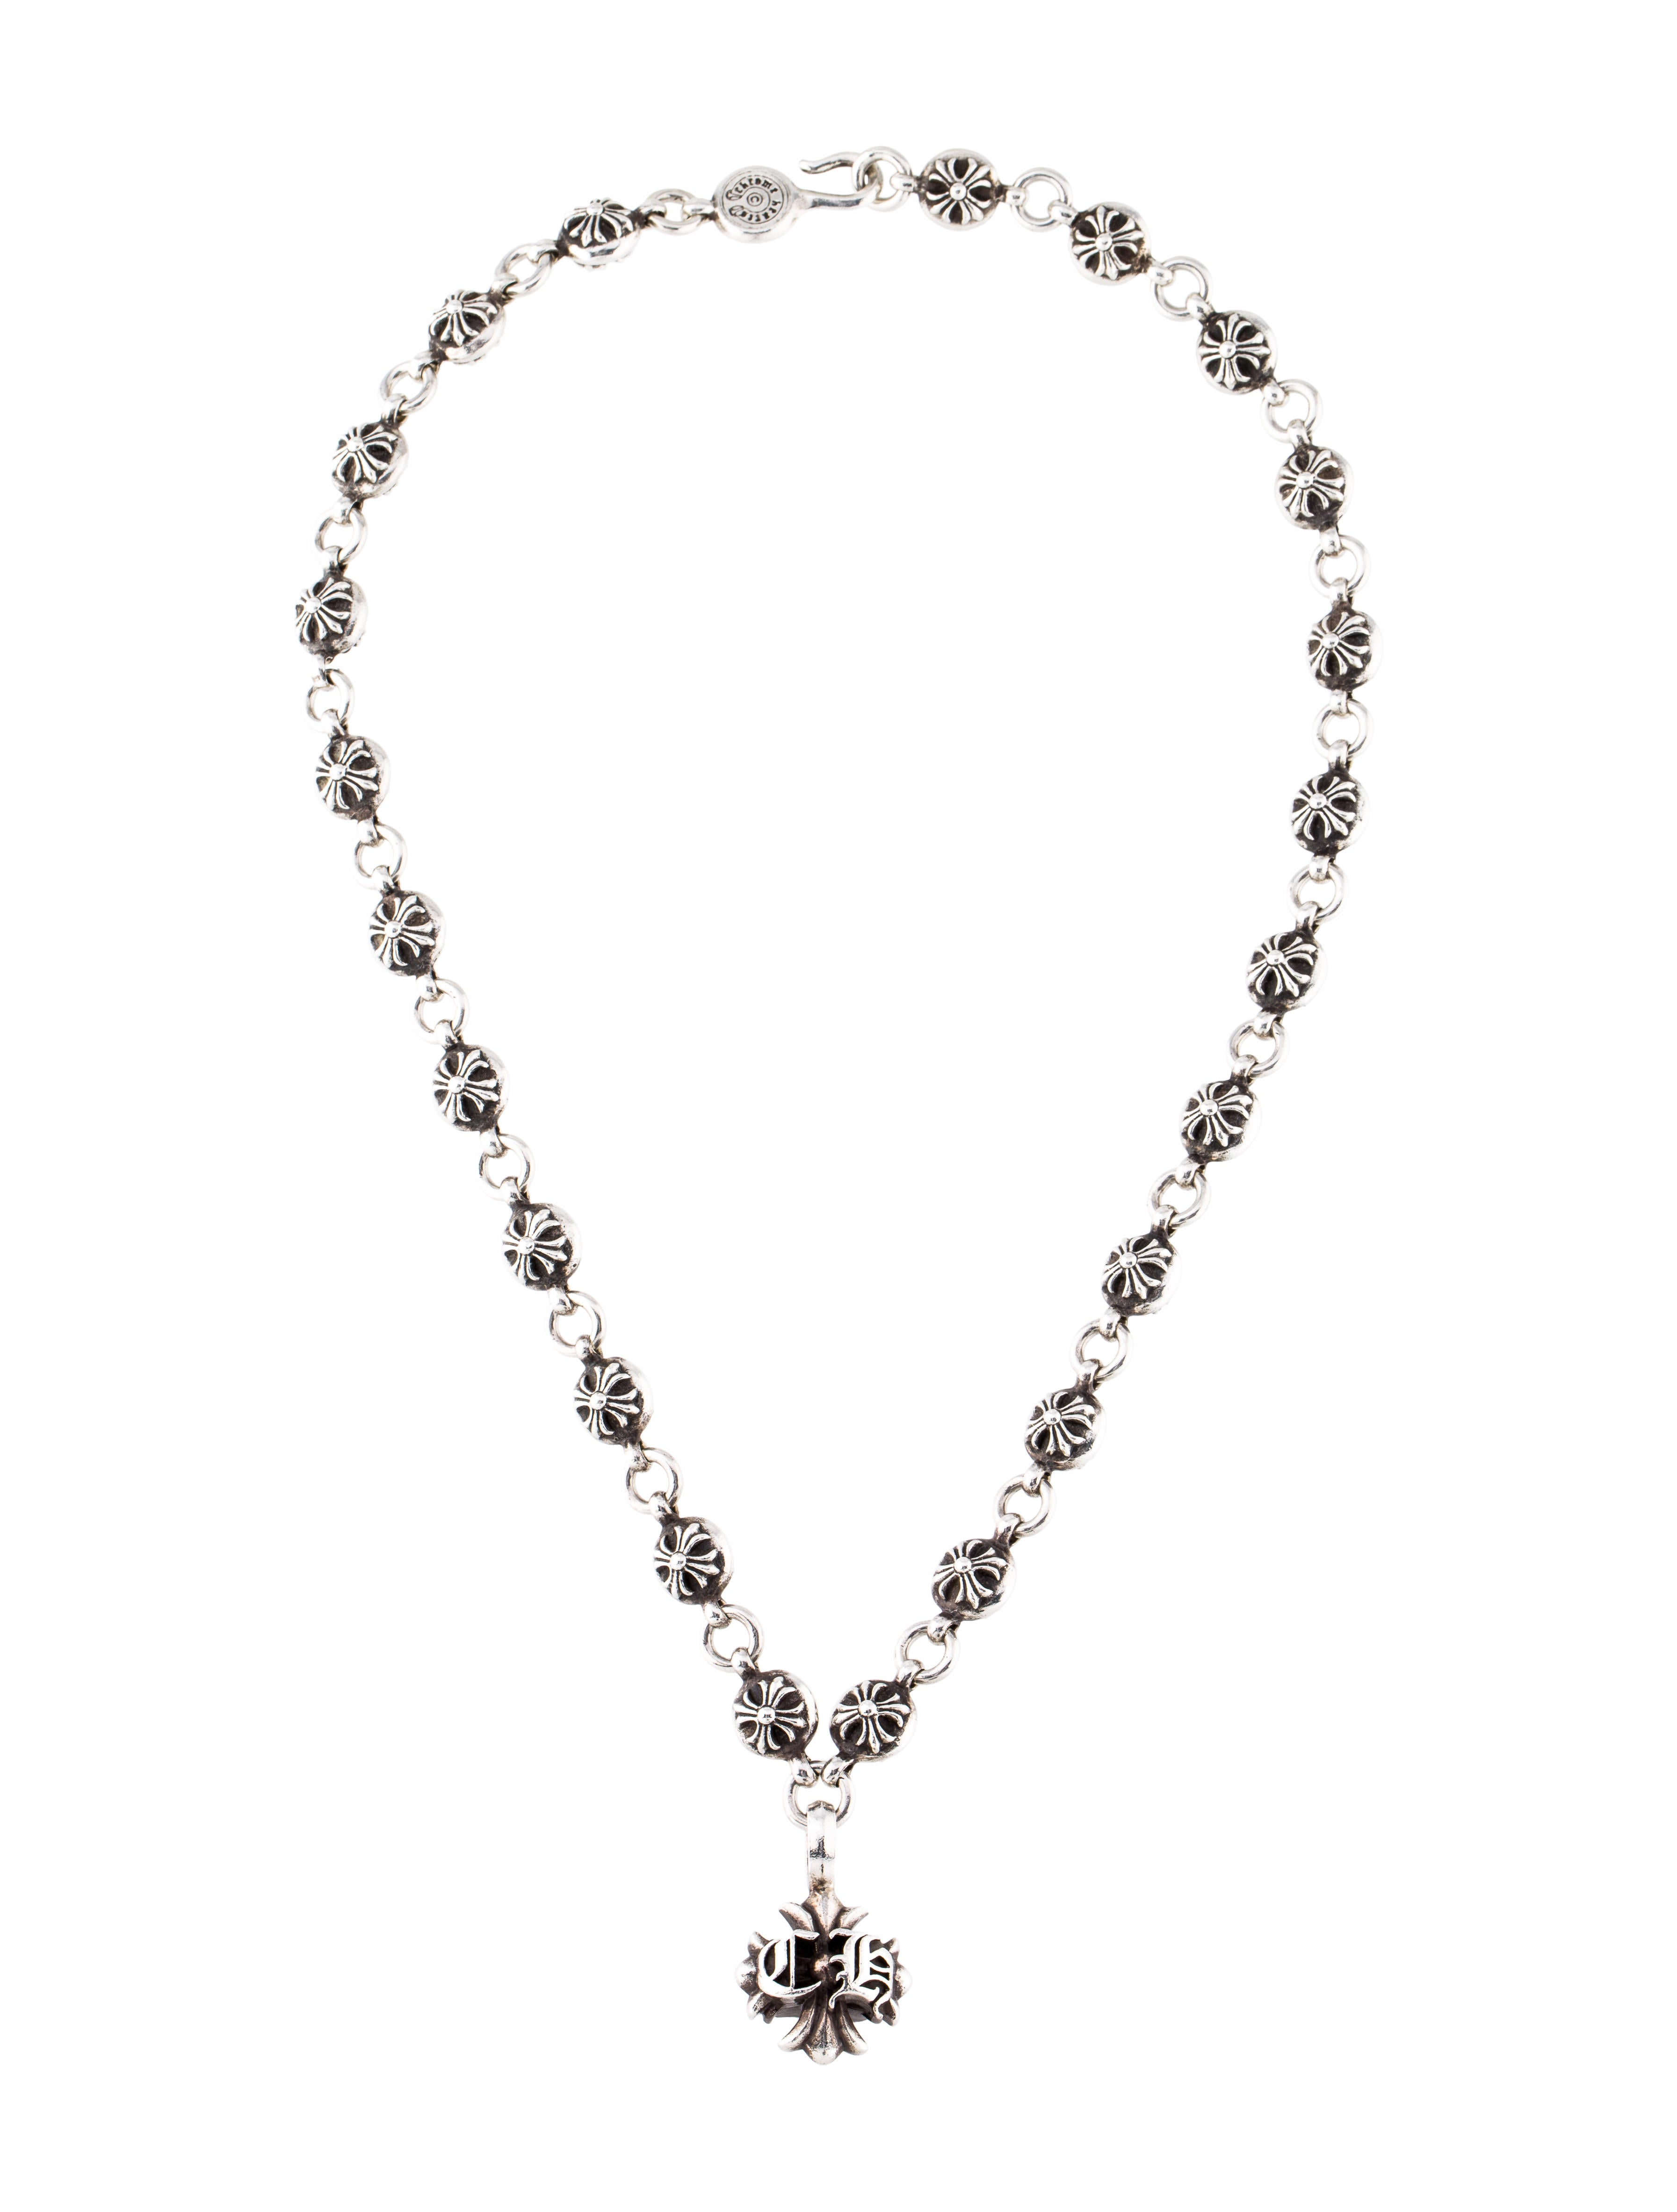 a4930ccdd345 Chrome Hearts CH Cross  1 Cross Ball Necklace - Necklaces - CHH23621 ...